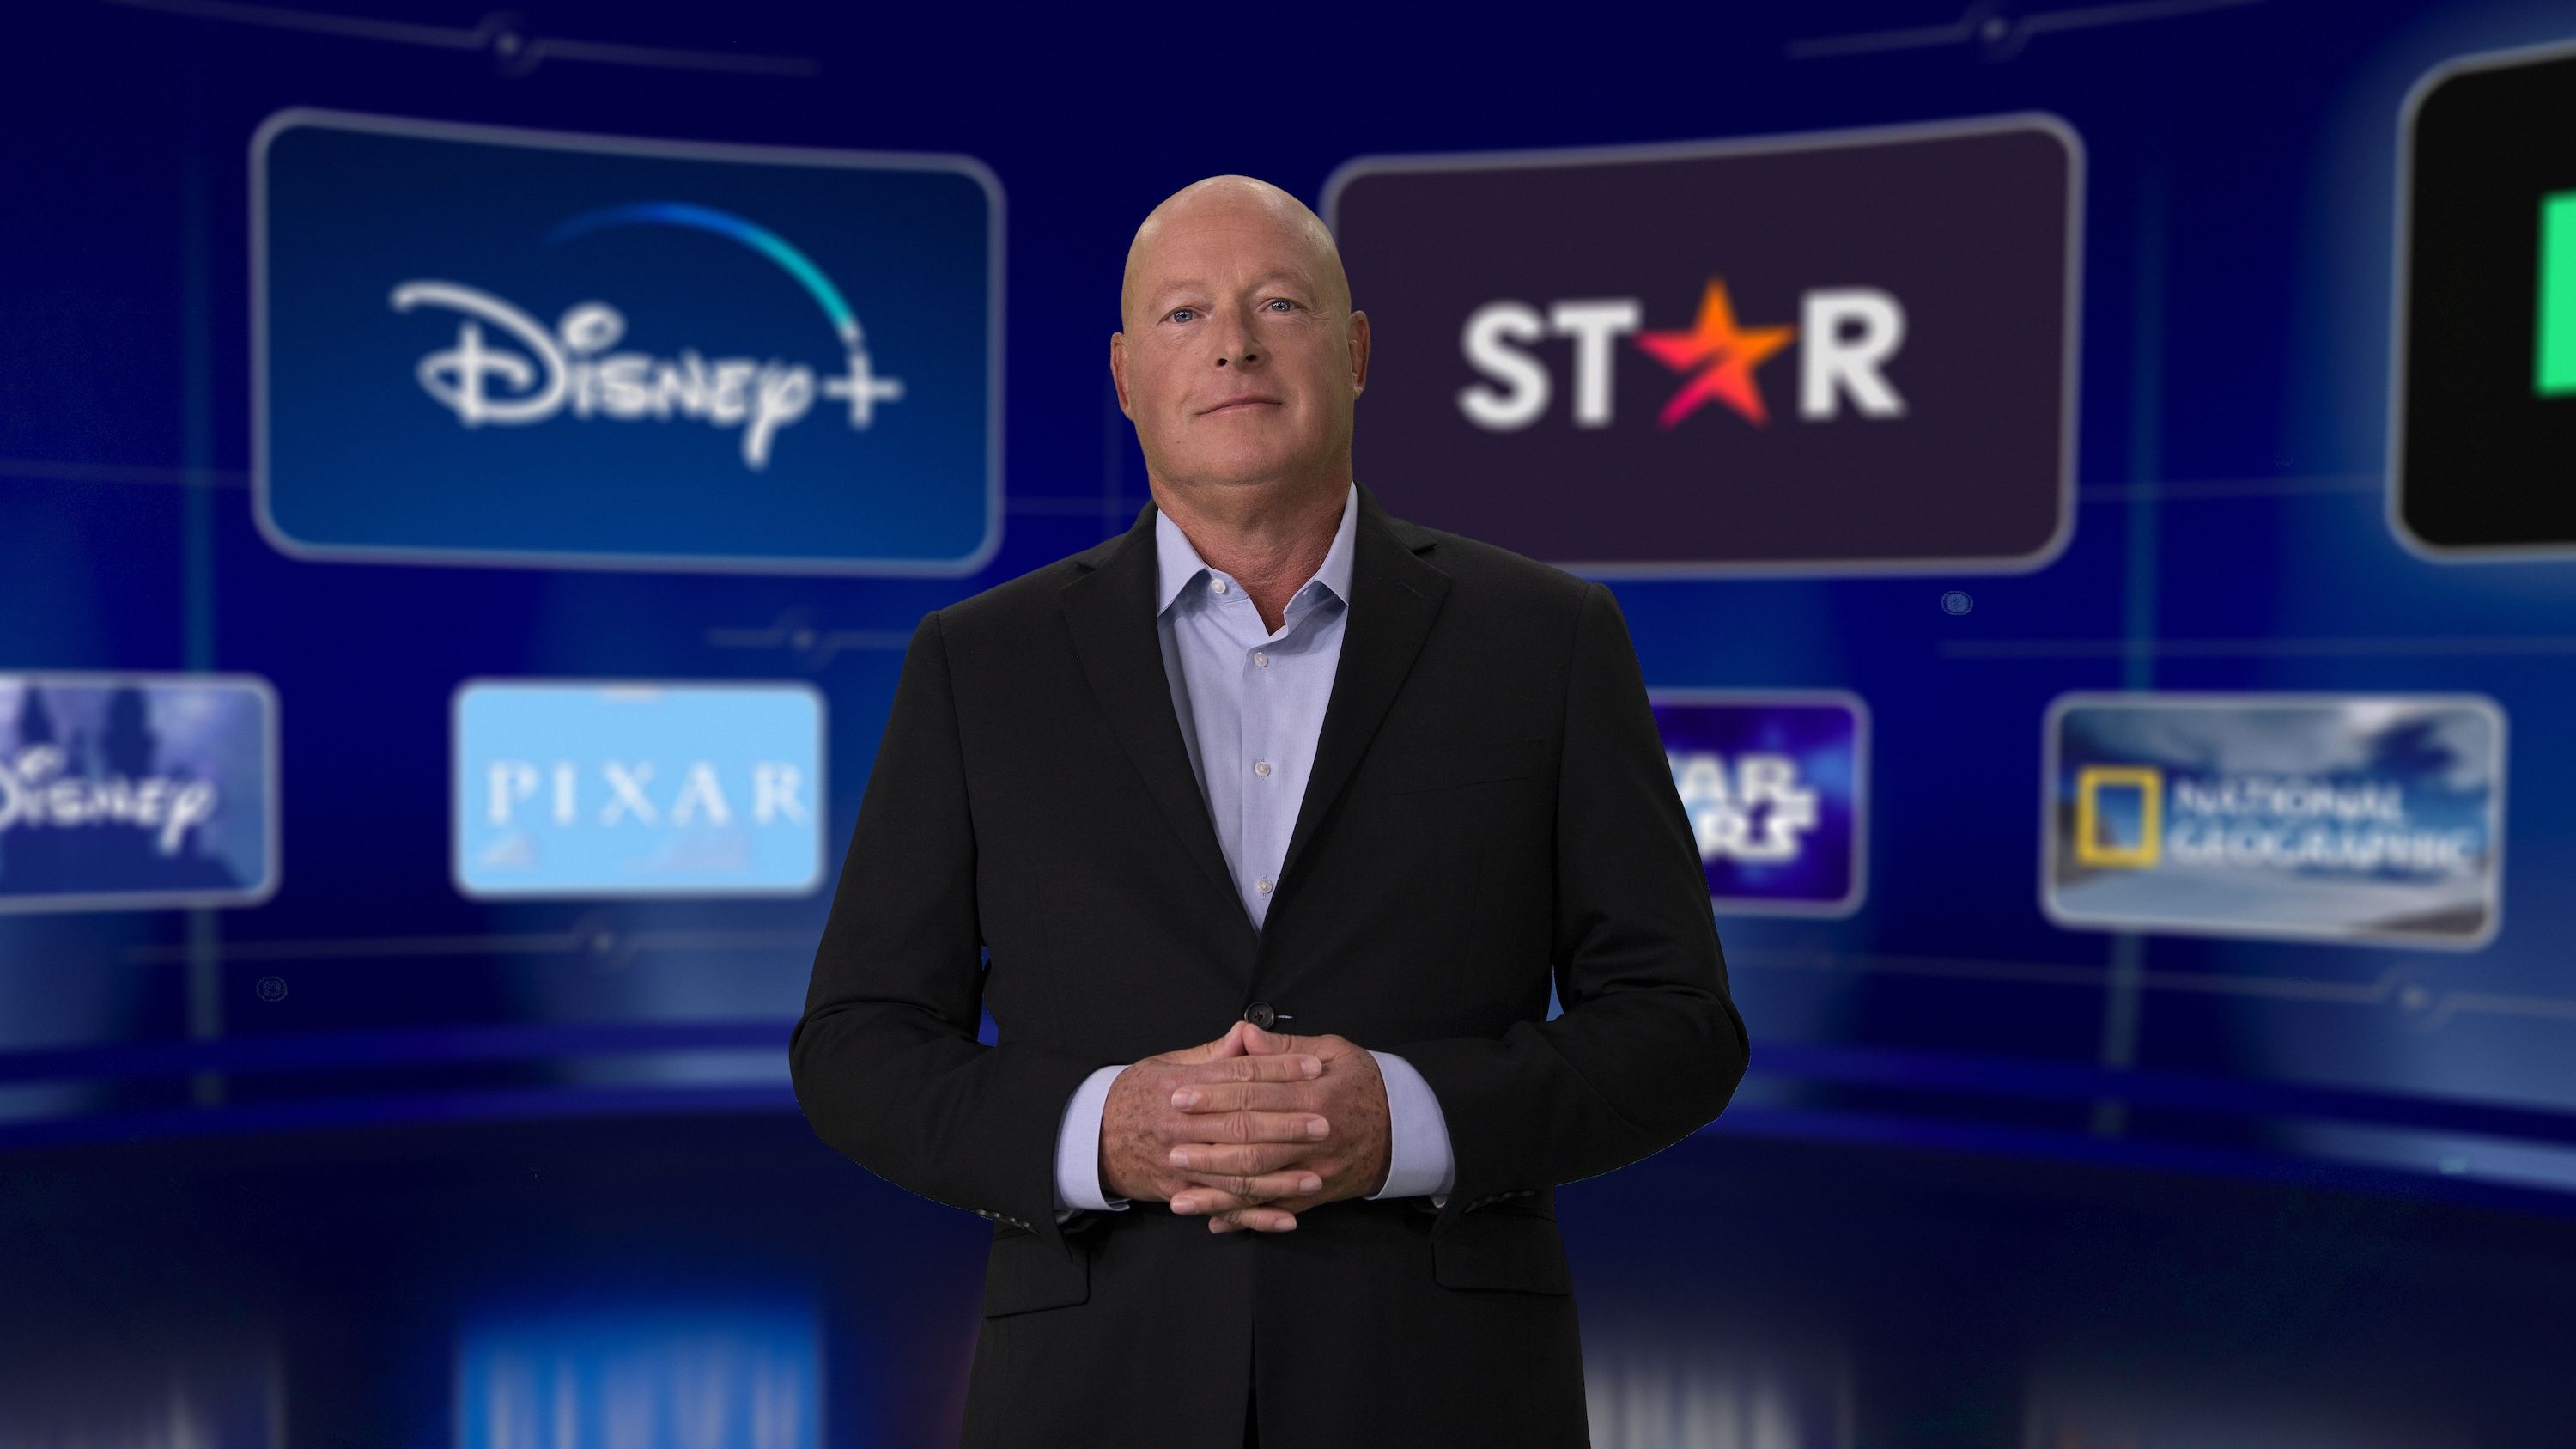 The Walt Disney Company CEO, Bob Chapek from the Investor Day 2020 presentation happening now.